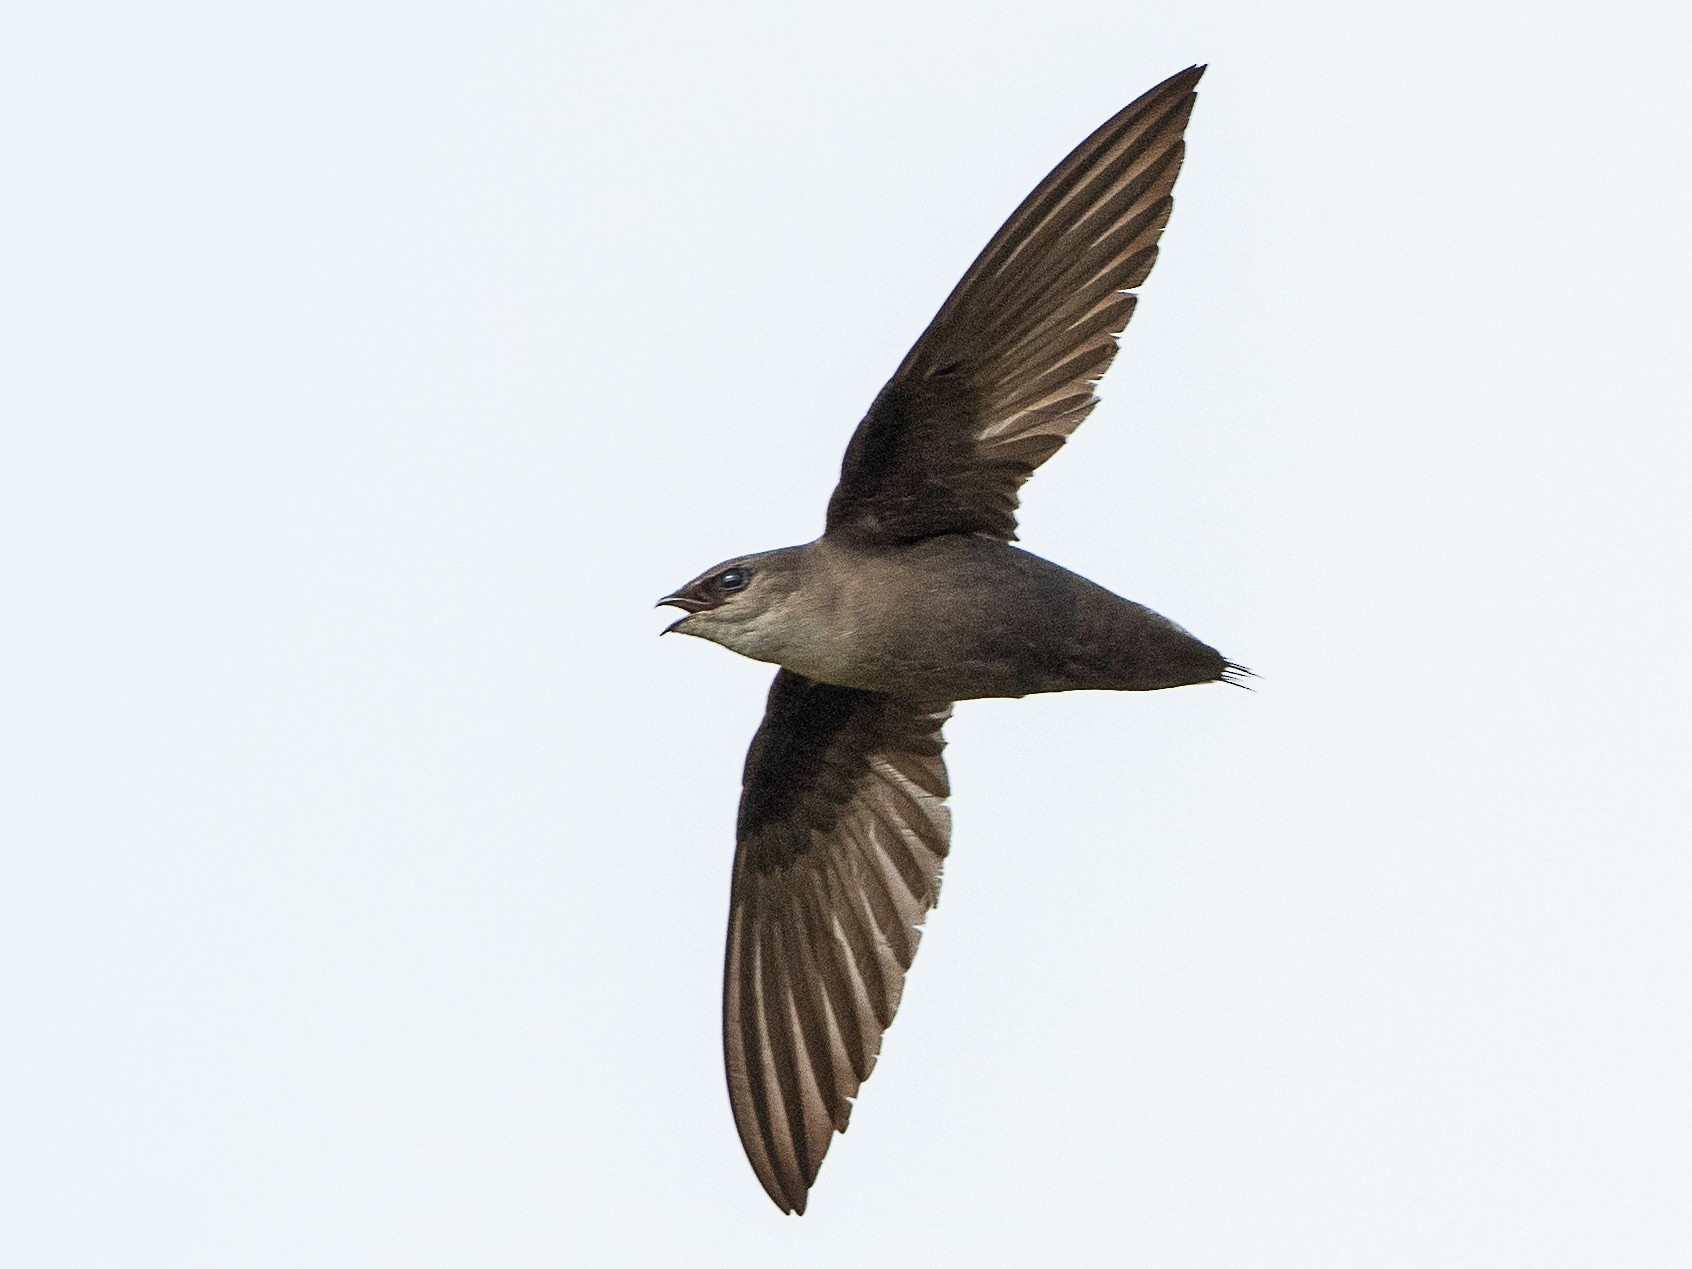 Chimney Swift - T. Jay Adams